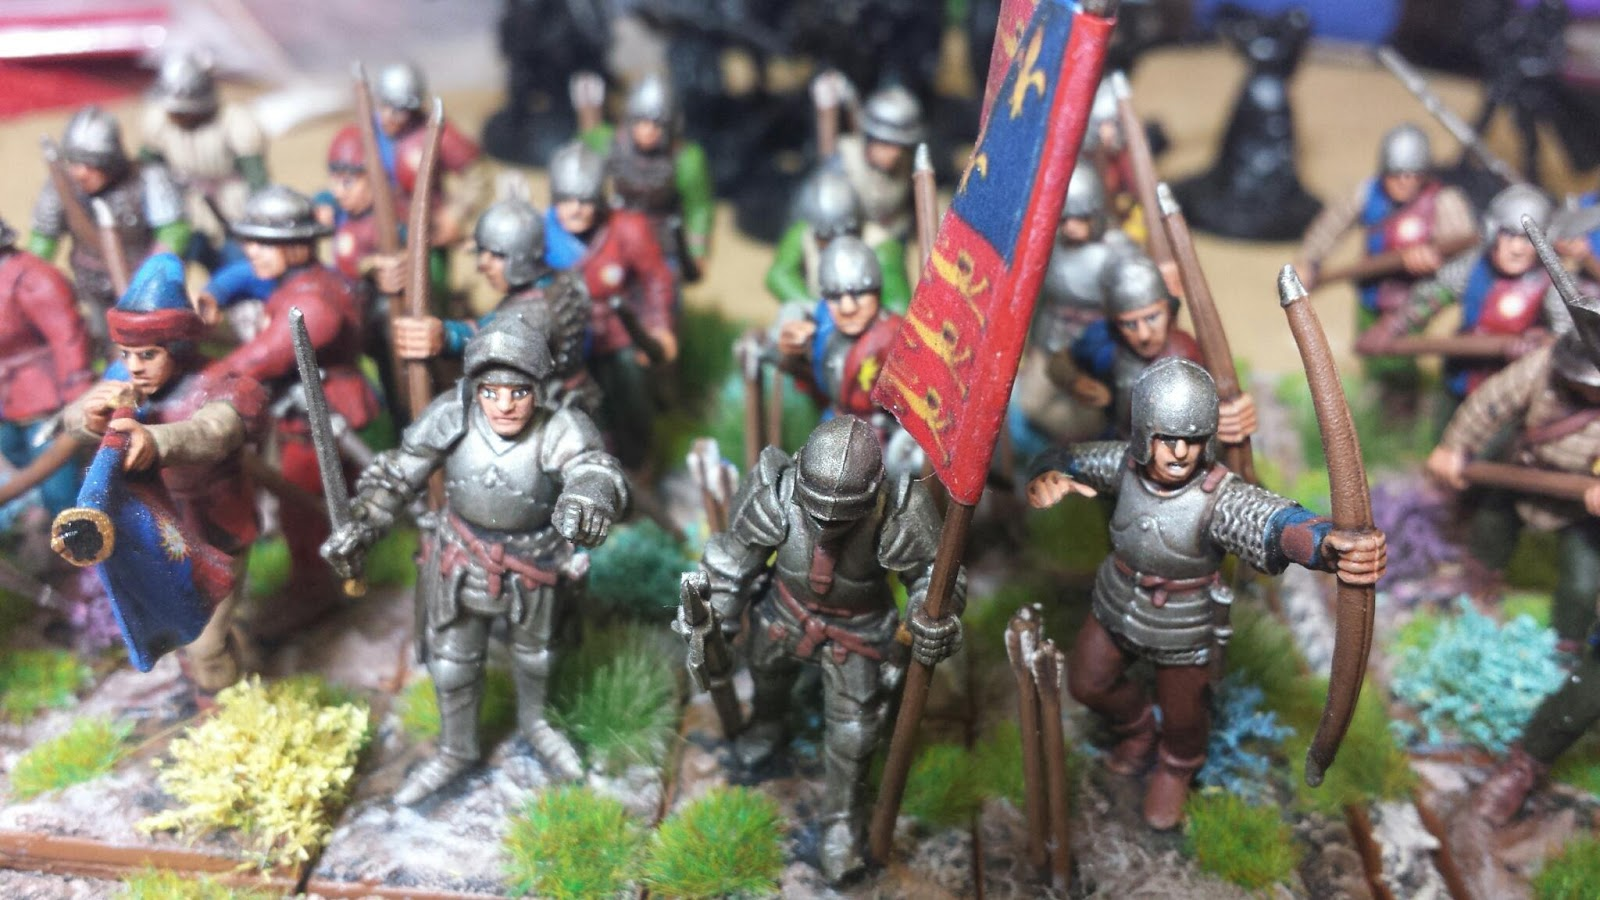 war of the roses Browse 19 critical wars of the roses: henry vi & richard iii reviews & compare  wars of the roses: henry vi & richard iii ticket prices discover off.